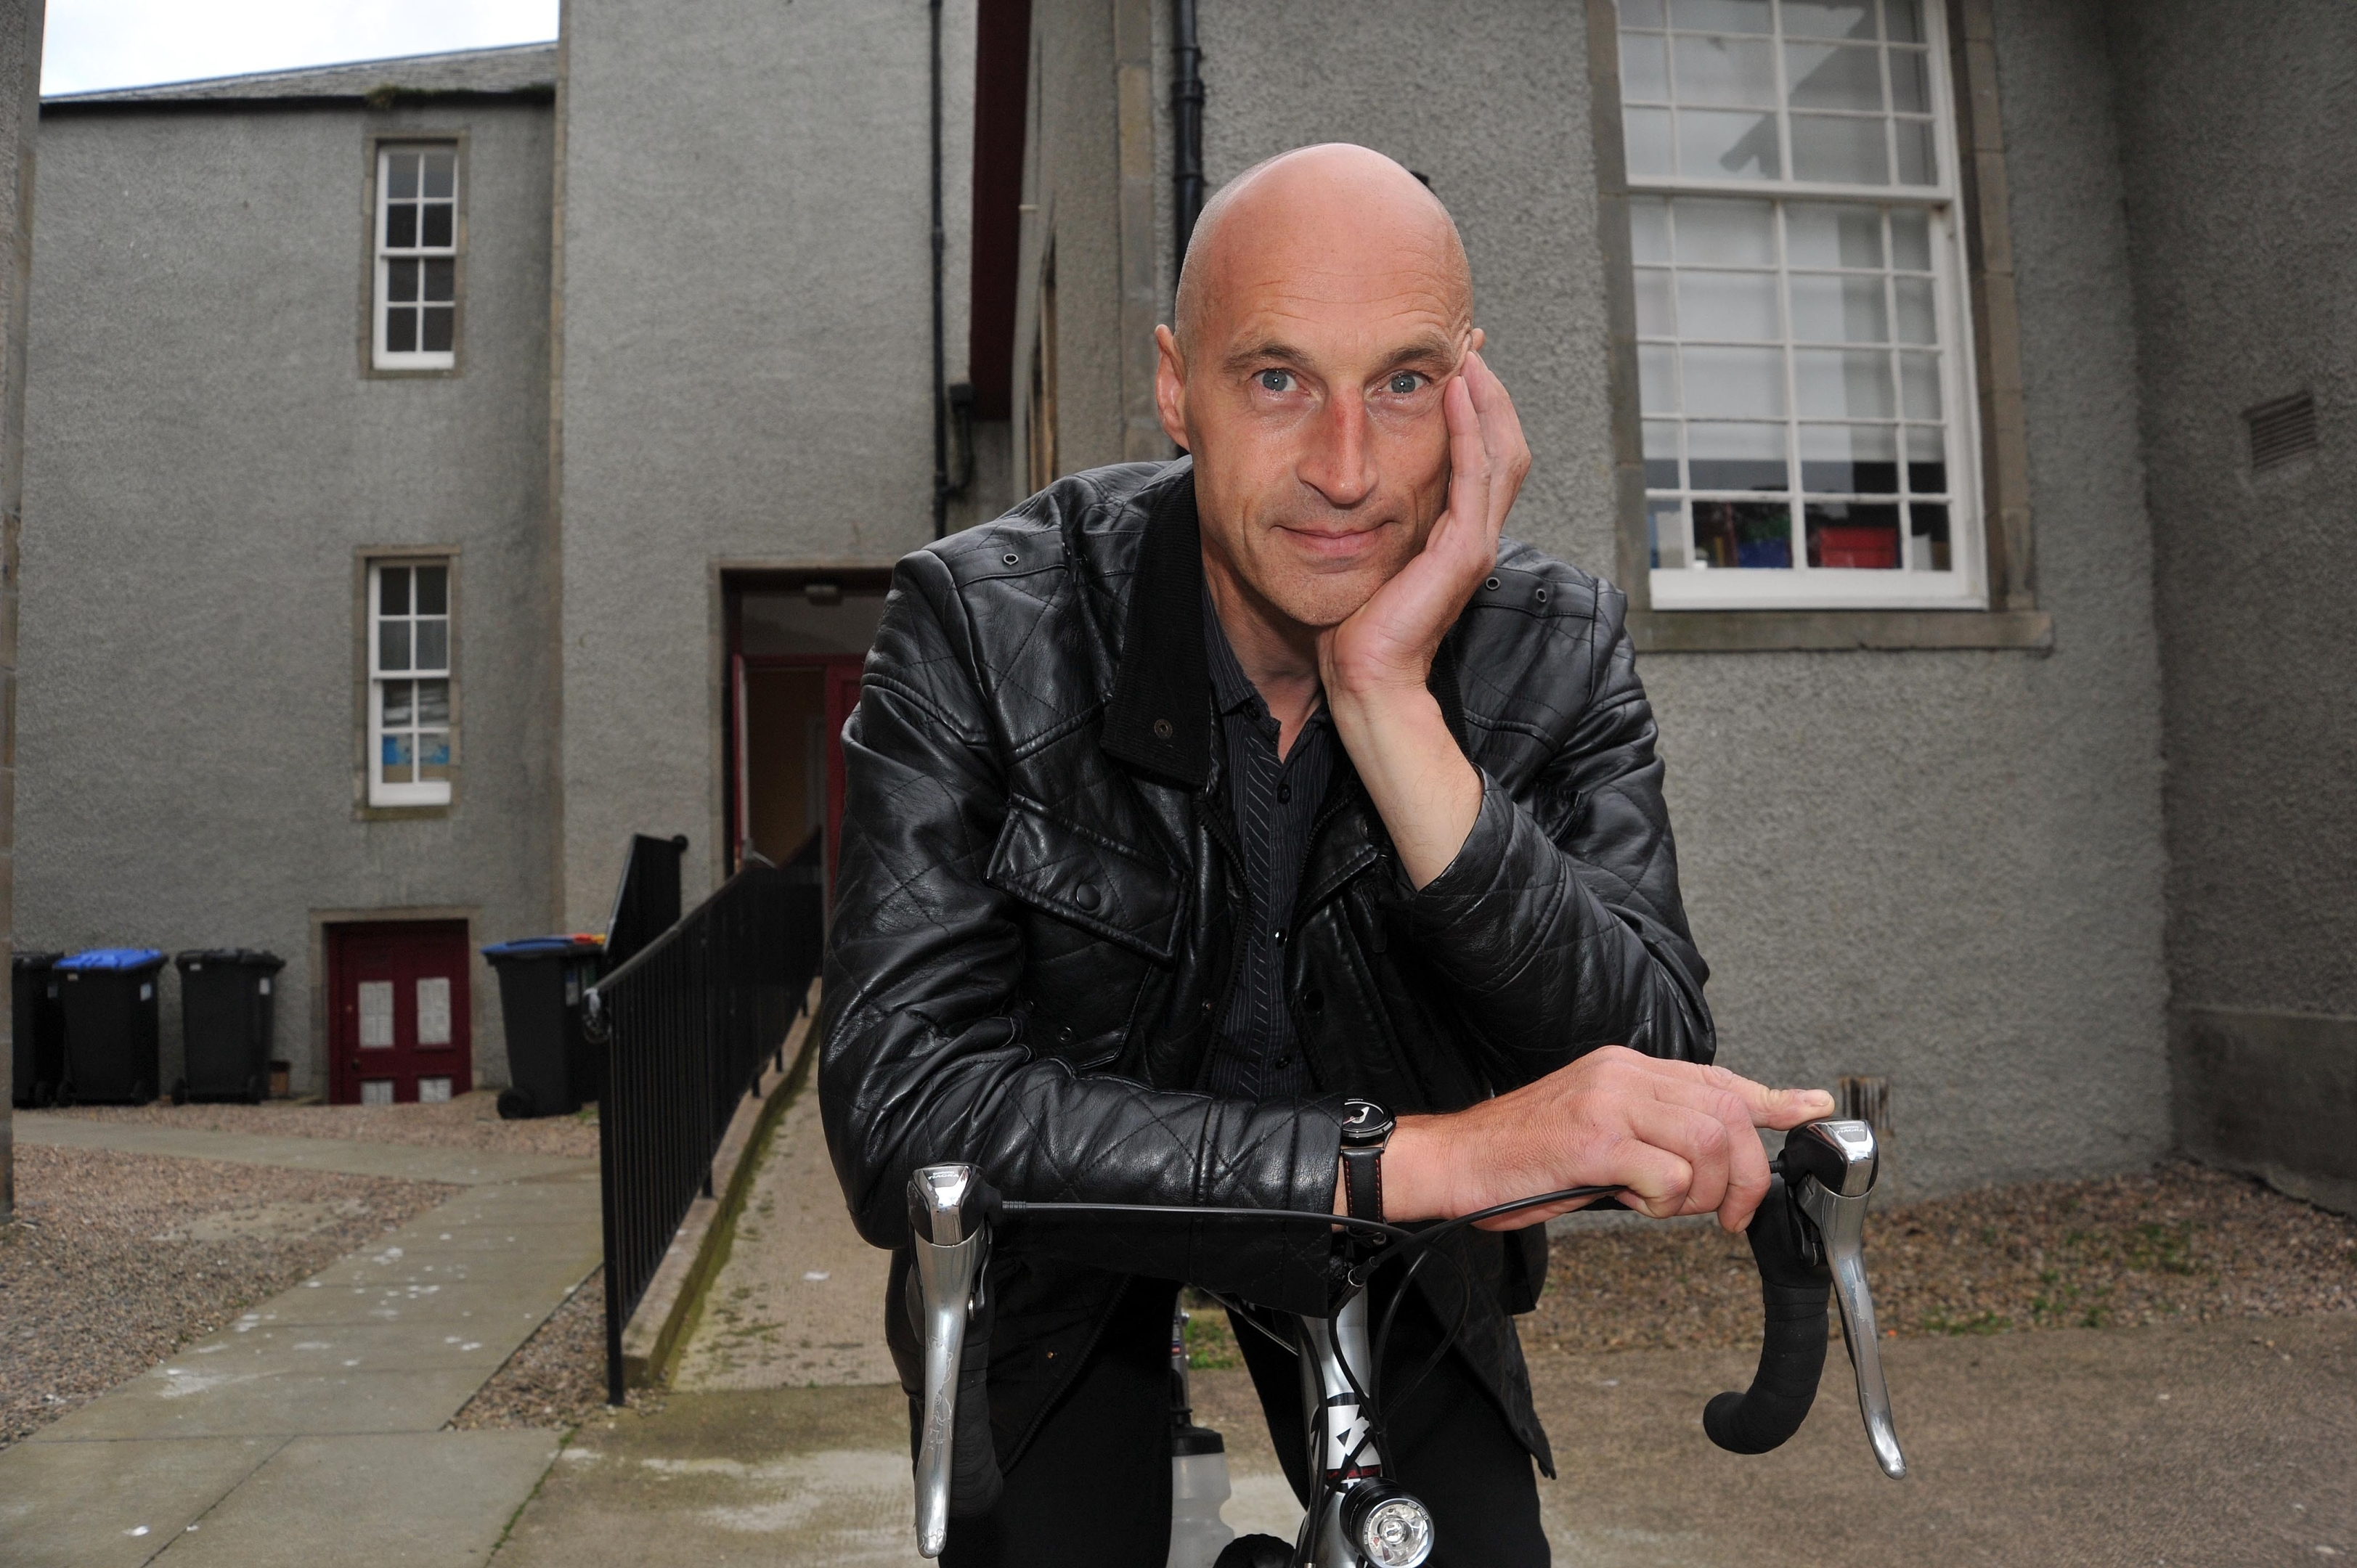 Cyclist Graeme Obree became a world record breaker in the 1990s.